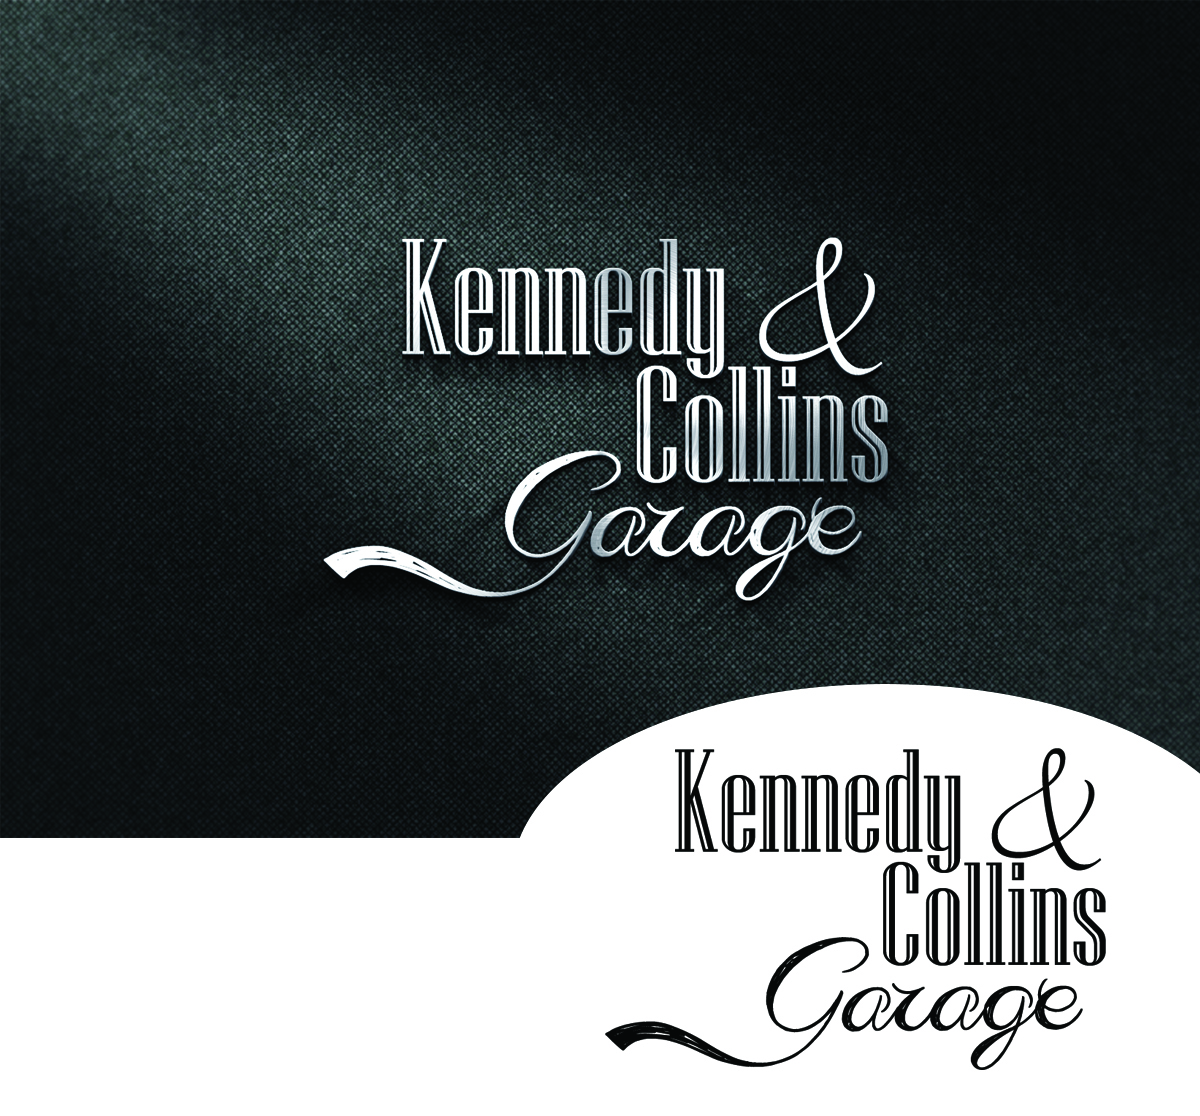 Serious Traditional Garage Logo Design For Kennedy Collins